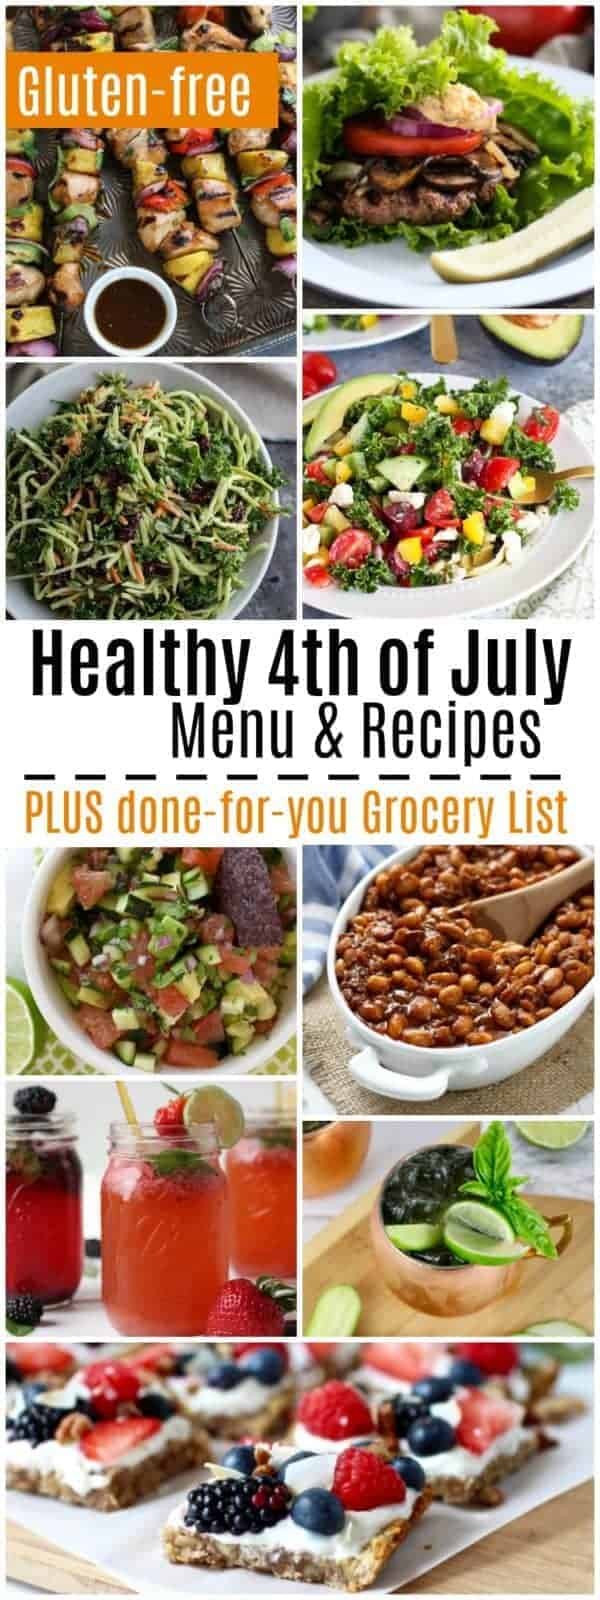 Pinterest image for Healthy 4th of July Menu